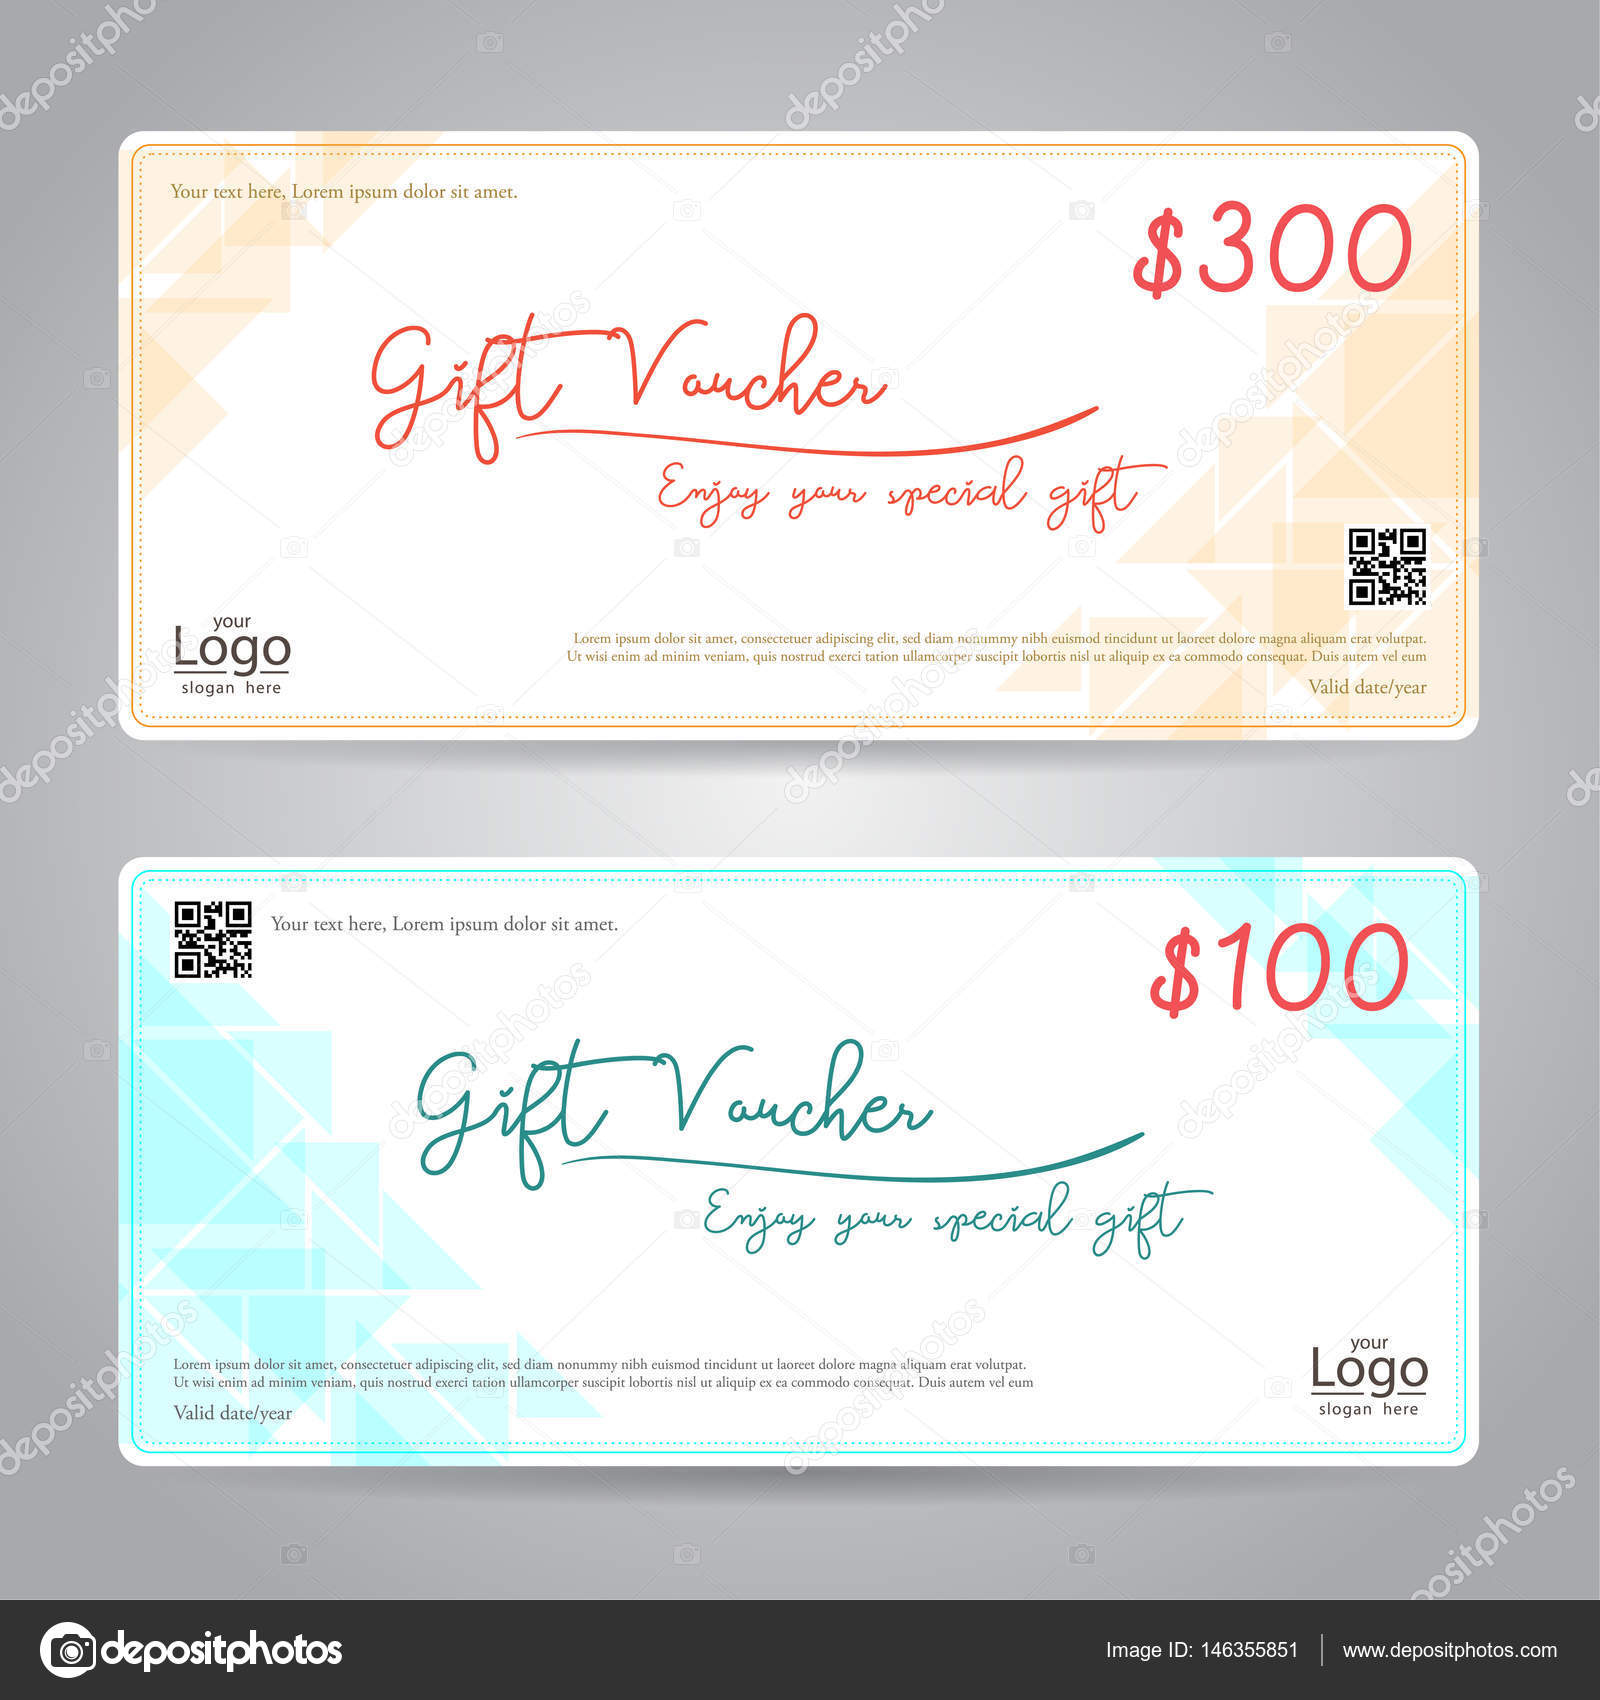 Elegant gift voucher or gift card or coupon template for discount or ...